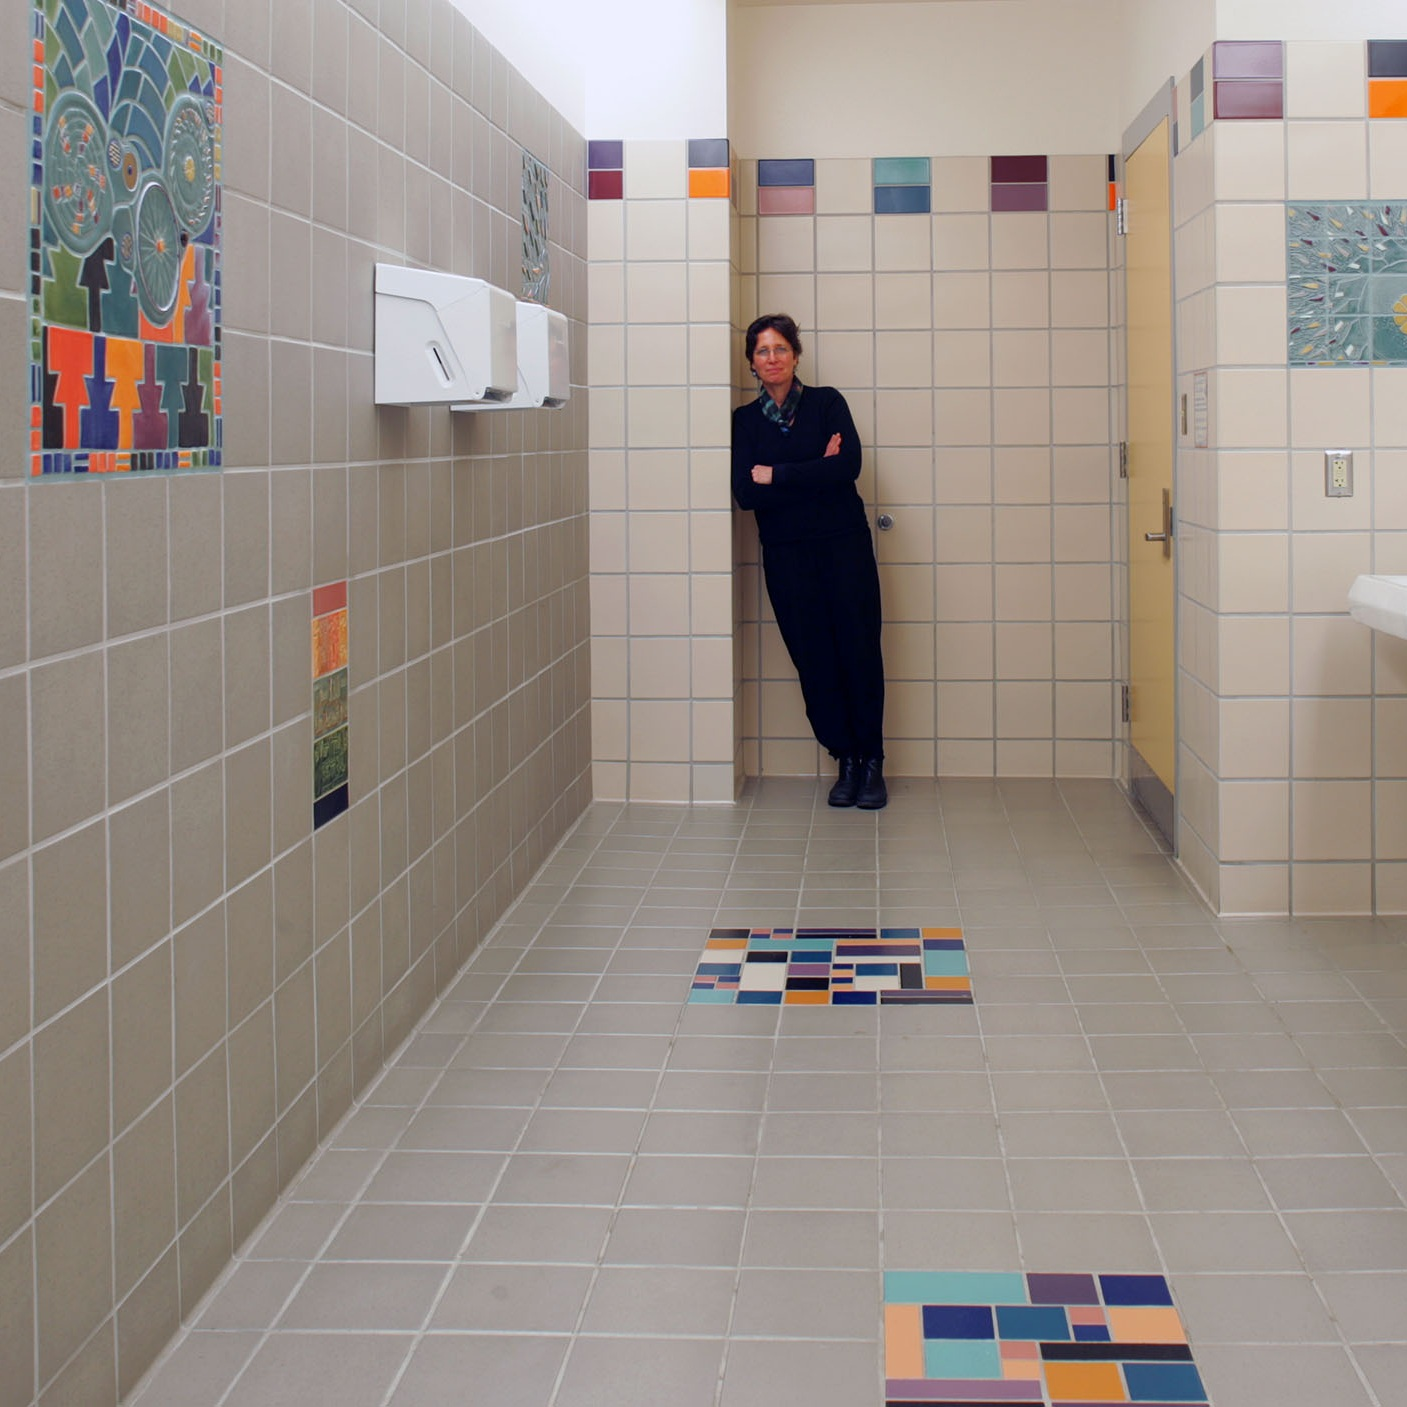 Ceramic Tile Installation - South Anchorage High School, Anchorage, Alaska